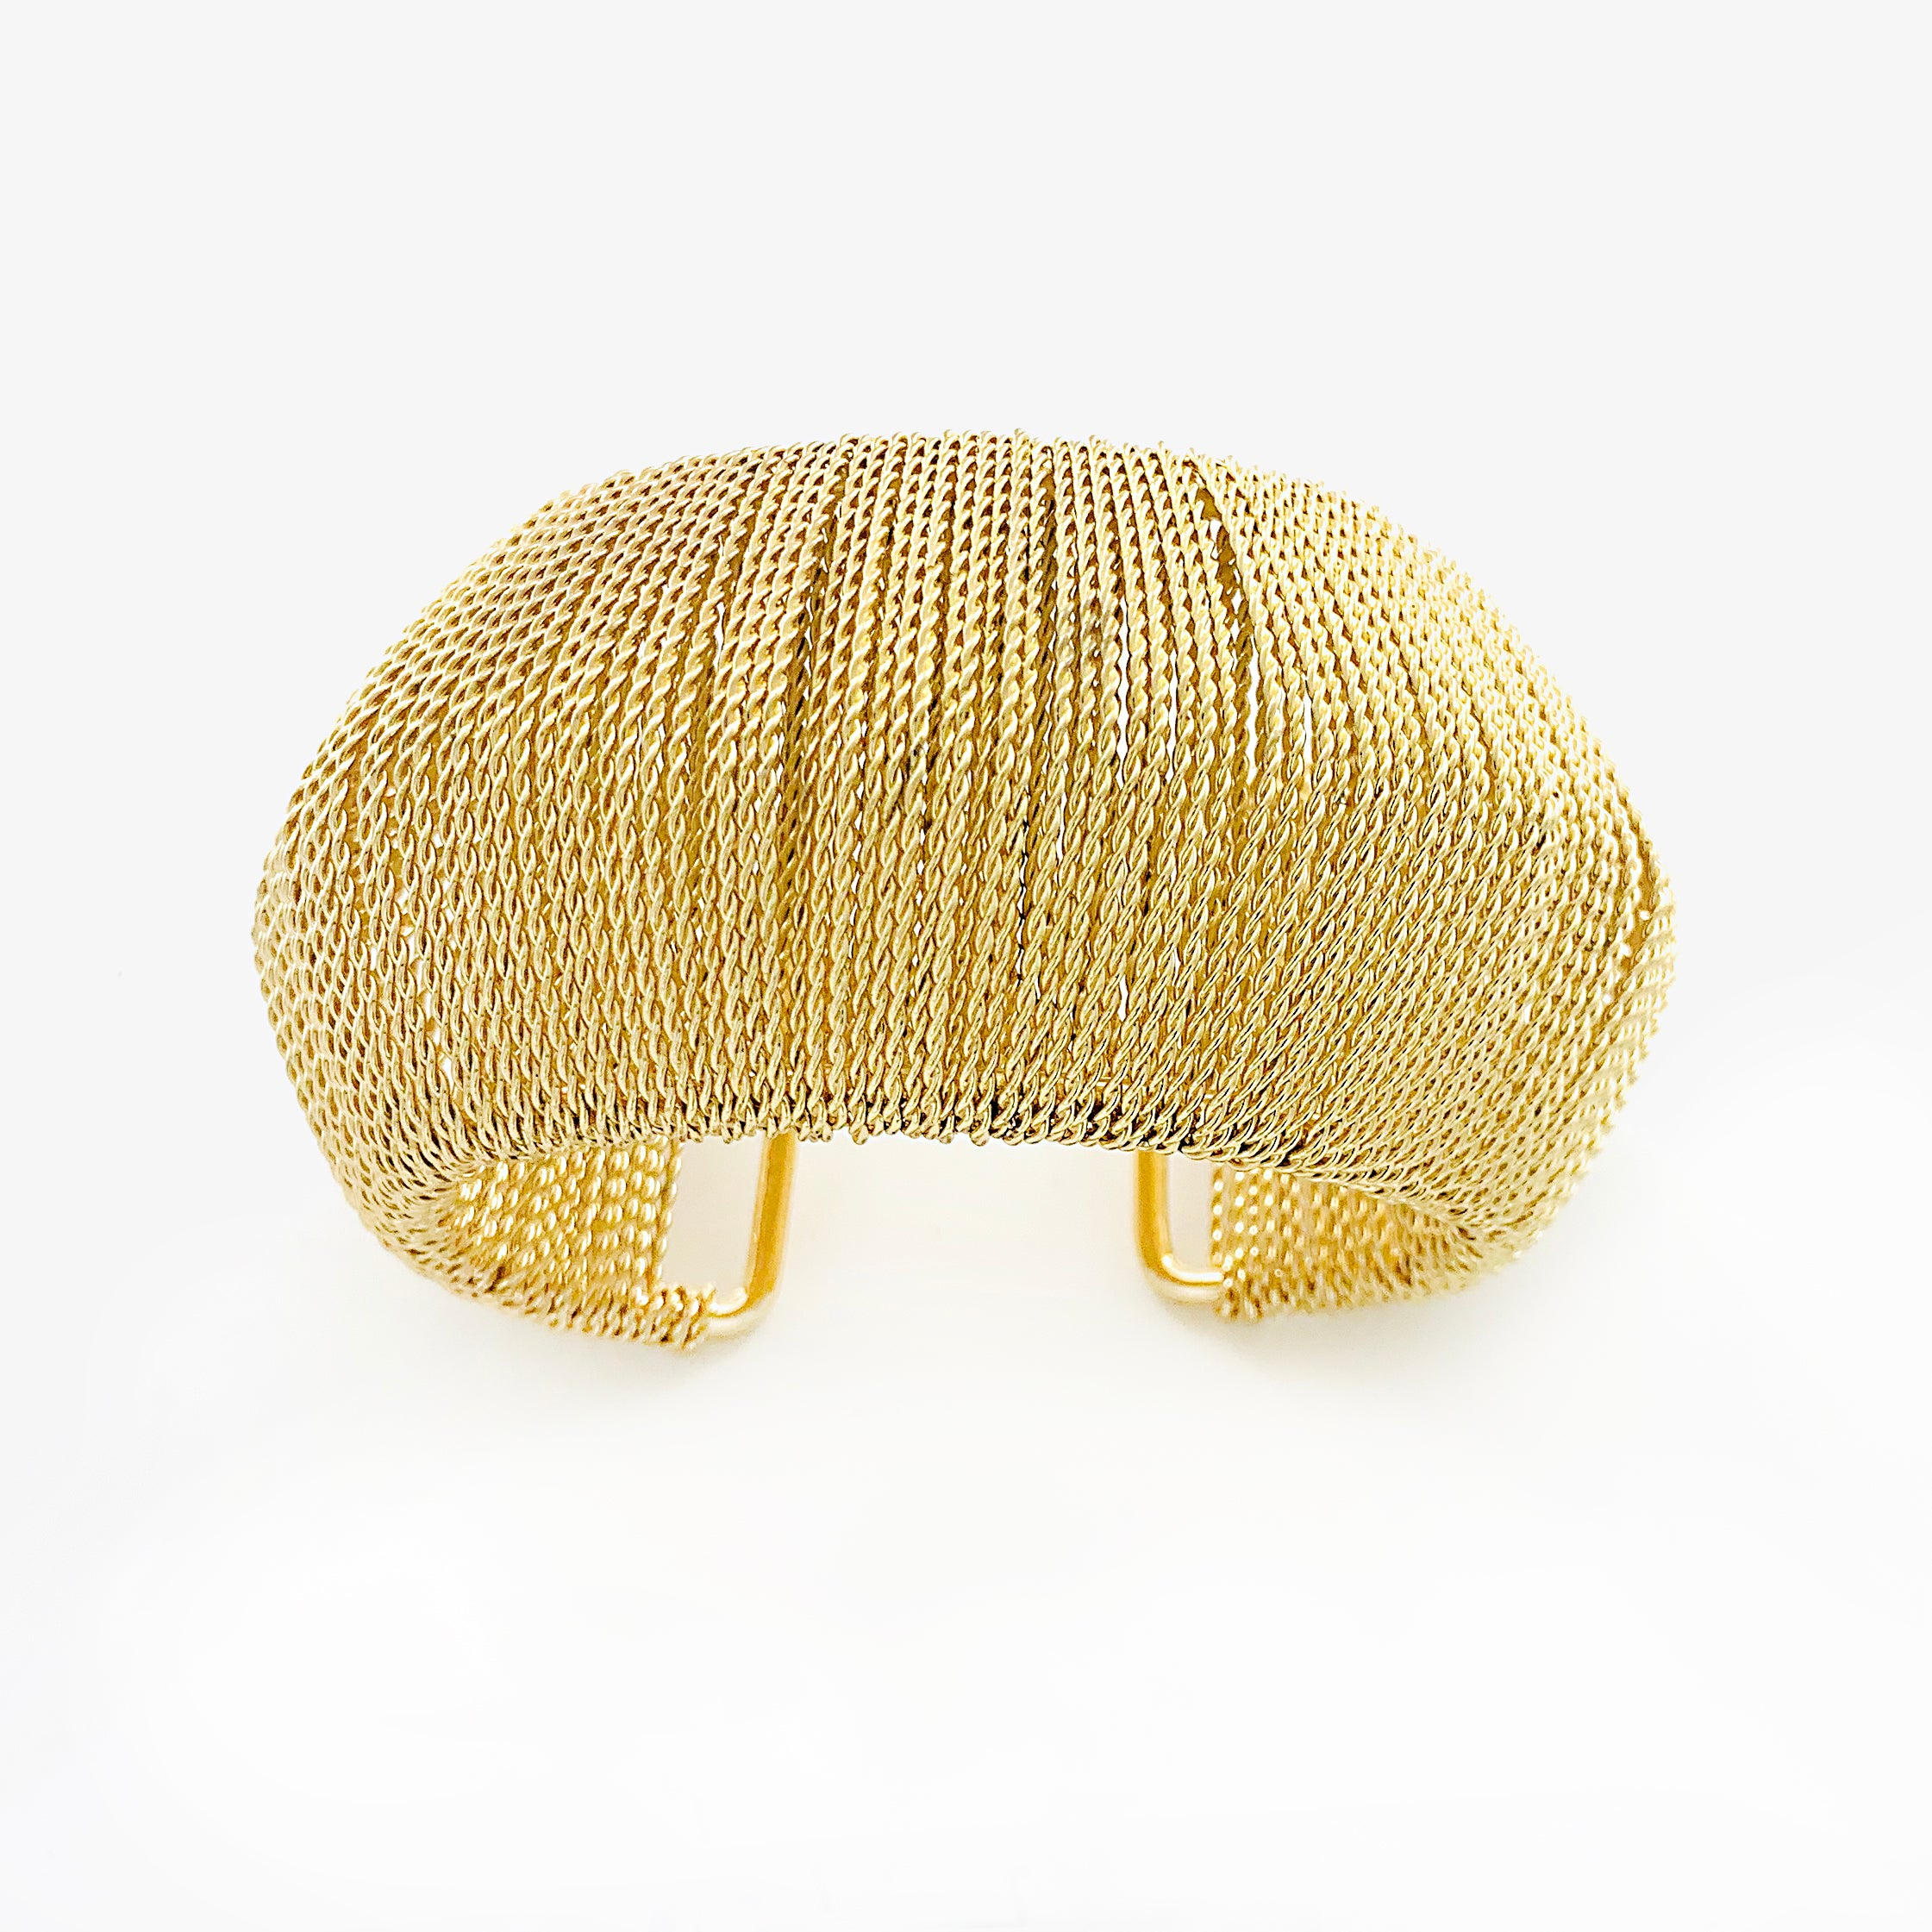 Gold Cuff with twisted gold strands